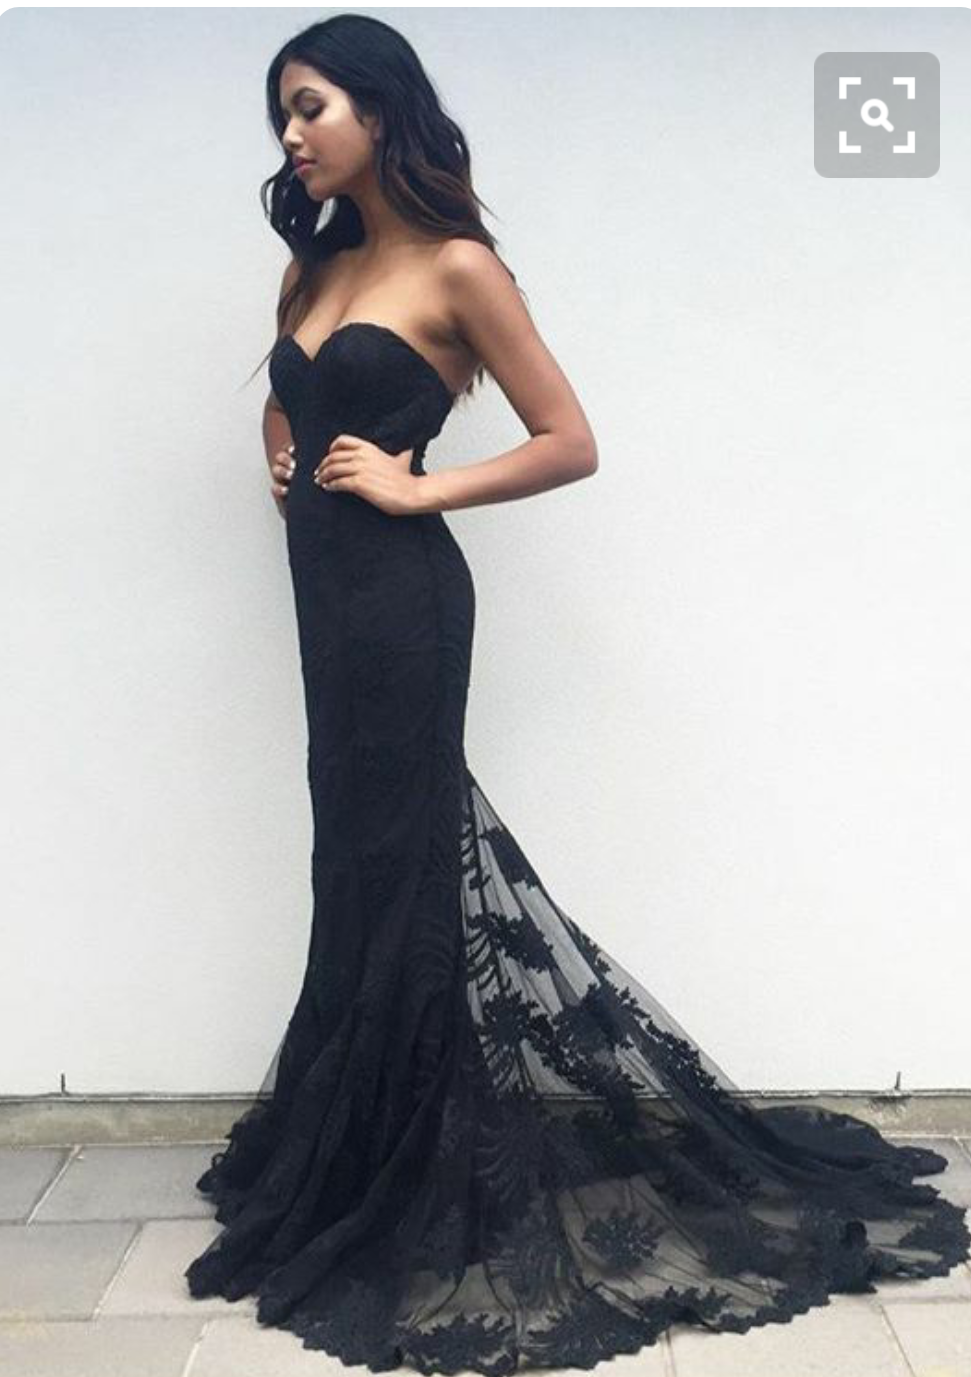 Pin By Frankie On Outfits Black Lace Prom Dress Sweetheart Prom Dress Prom Dresses Lace [ 1377 x 971 Pixel ]